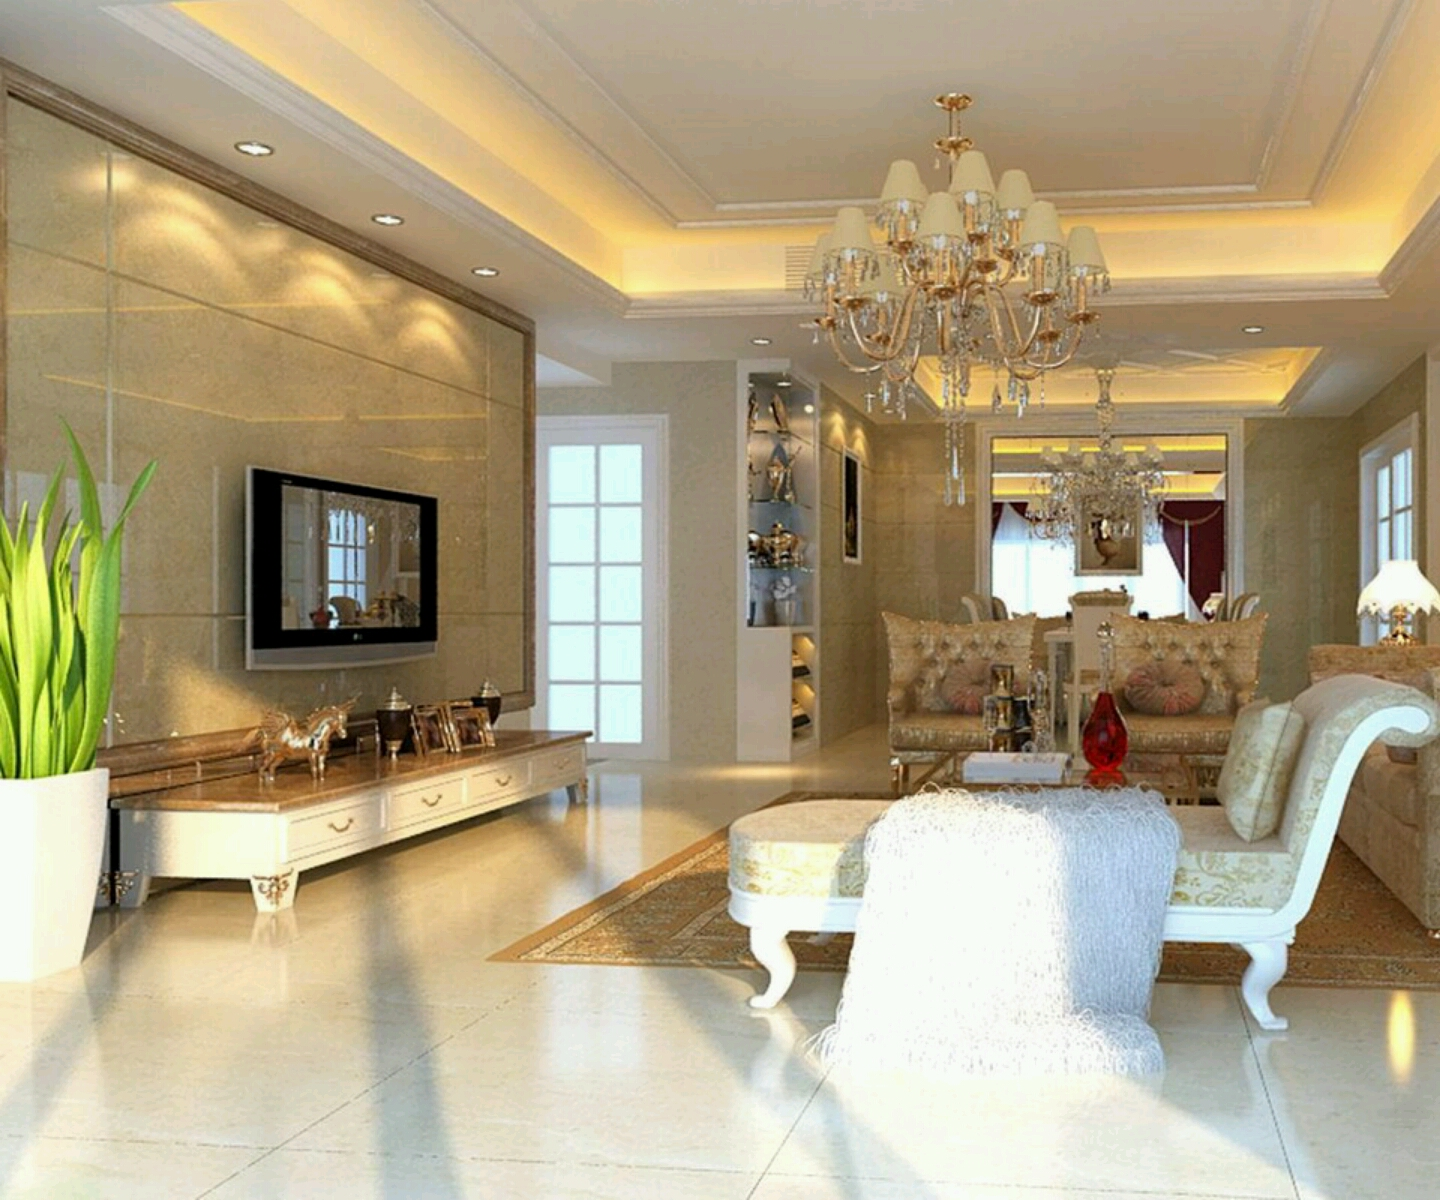 Luxury homes interior decoration living room designs ideas. | New home